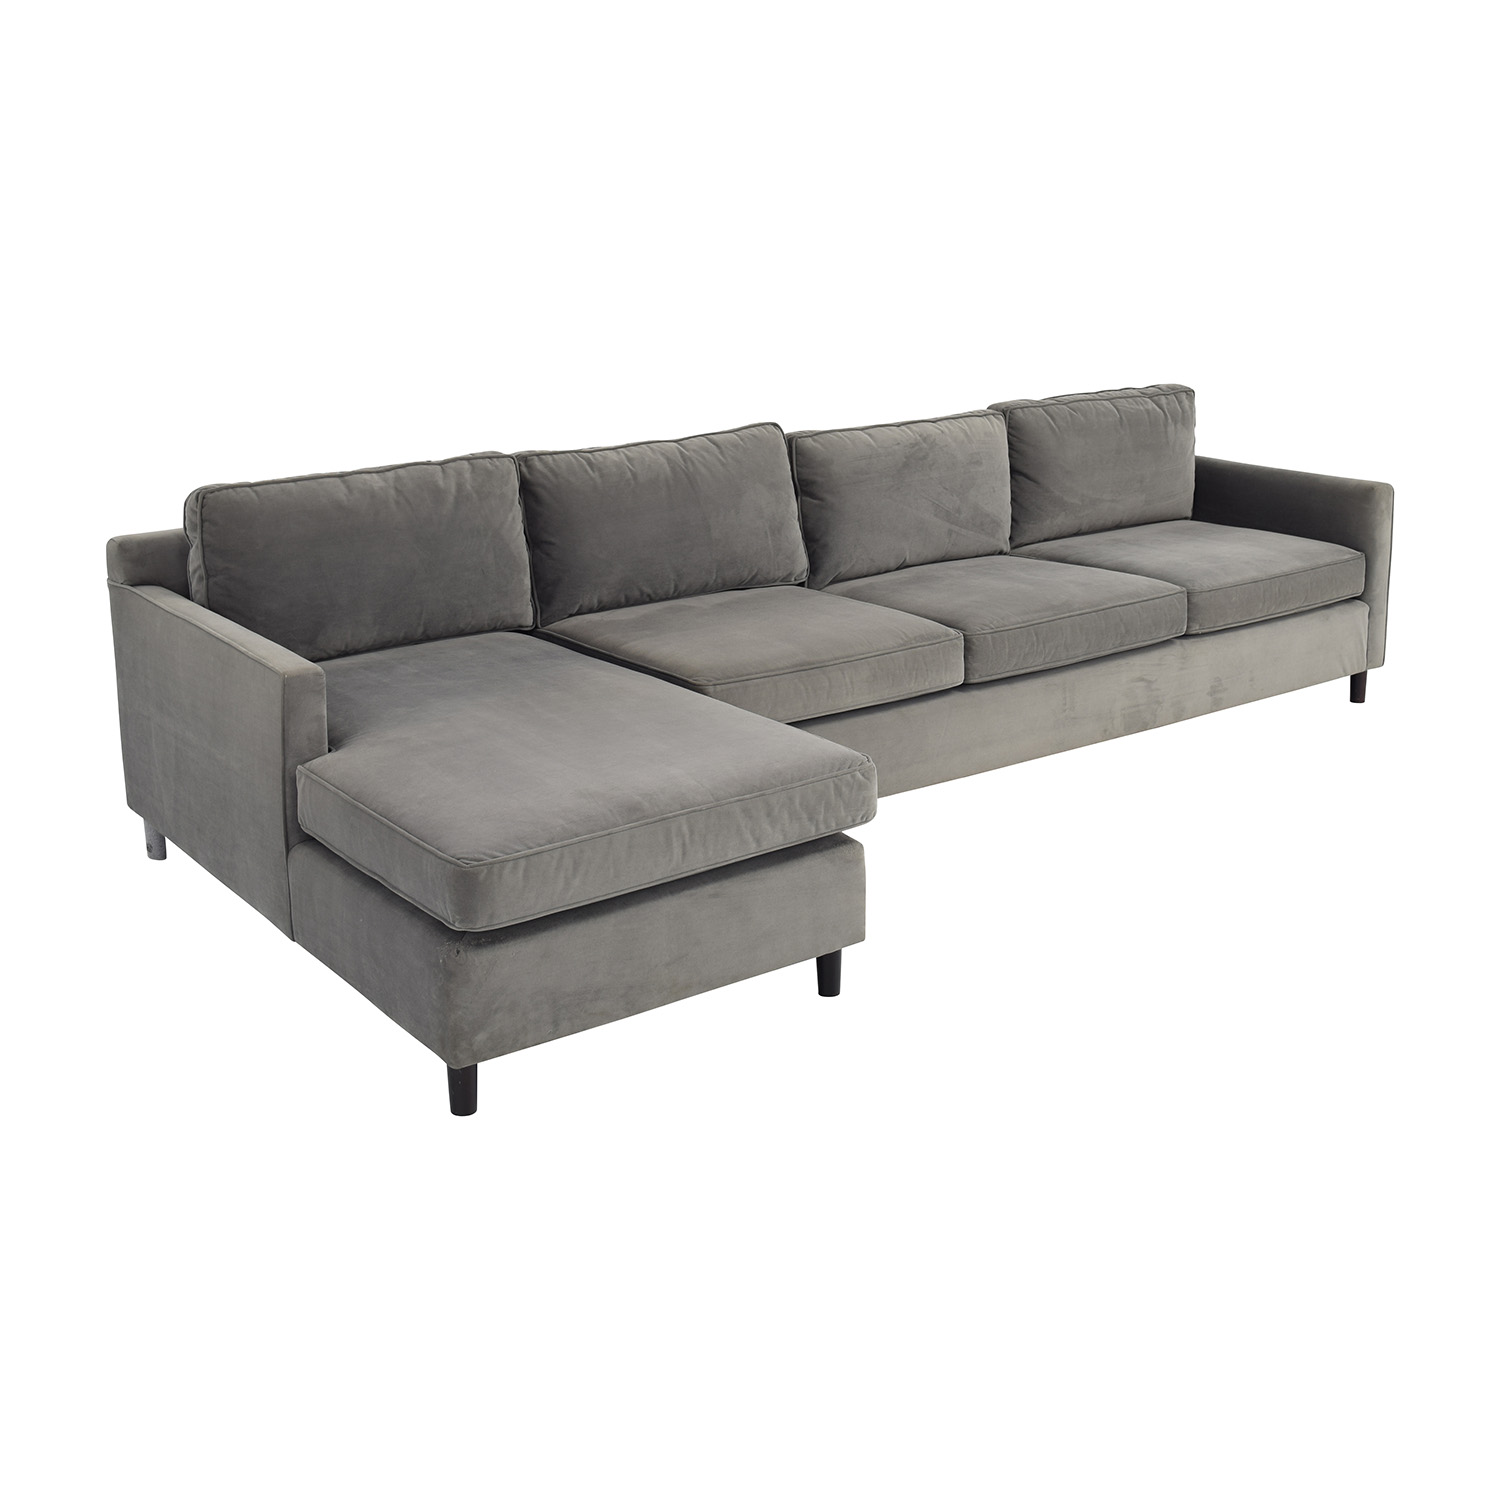 mitchell gold sectional sofa white vinyl 62 off and bob williams